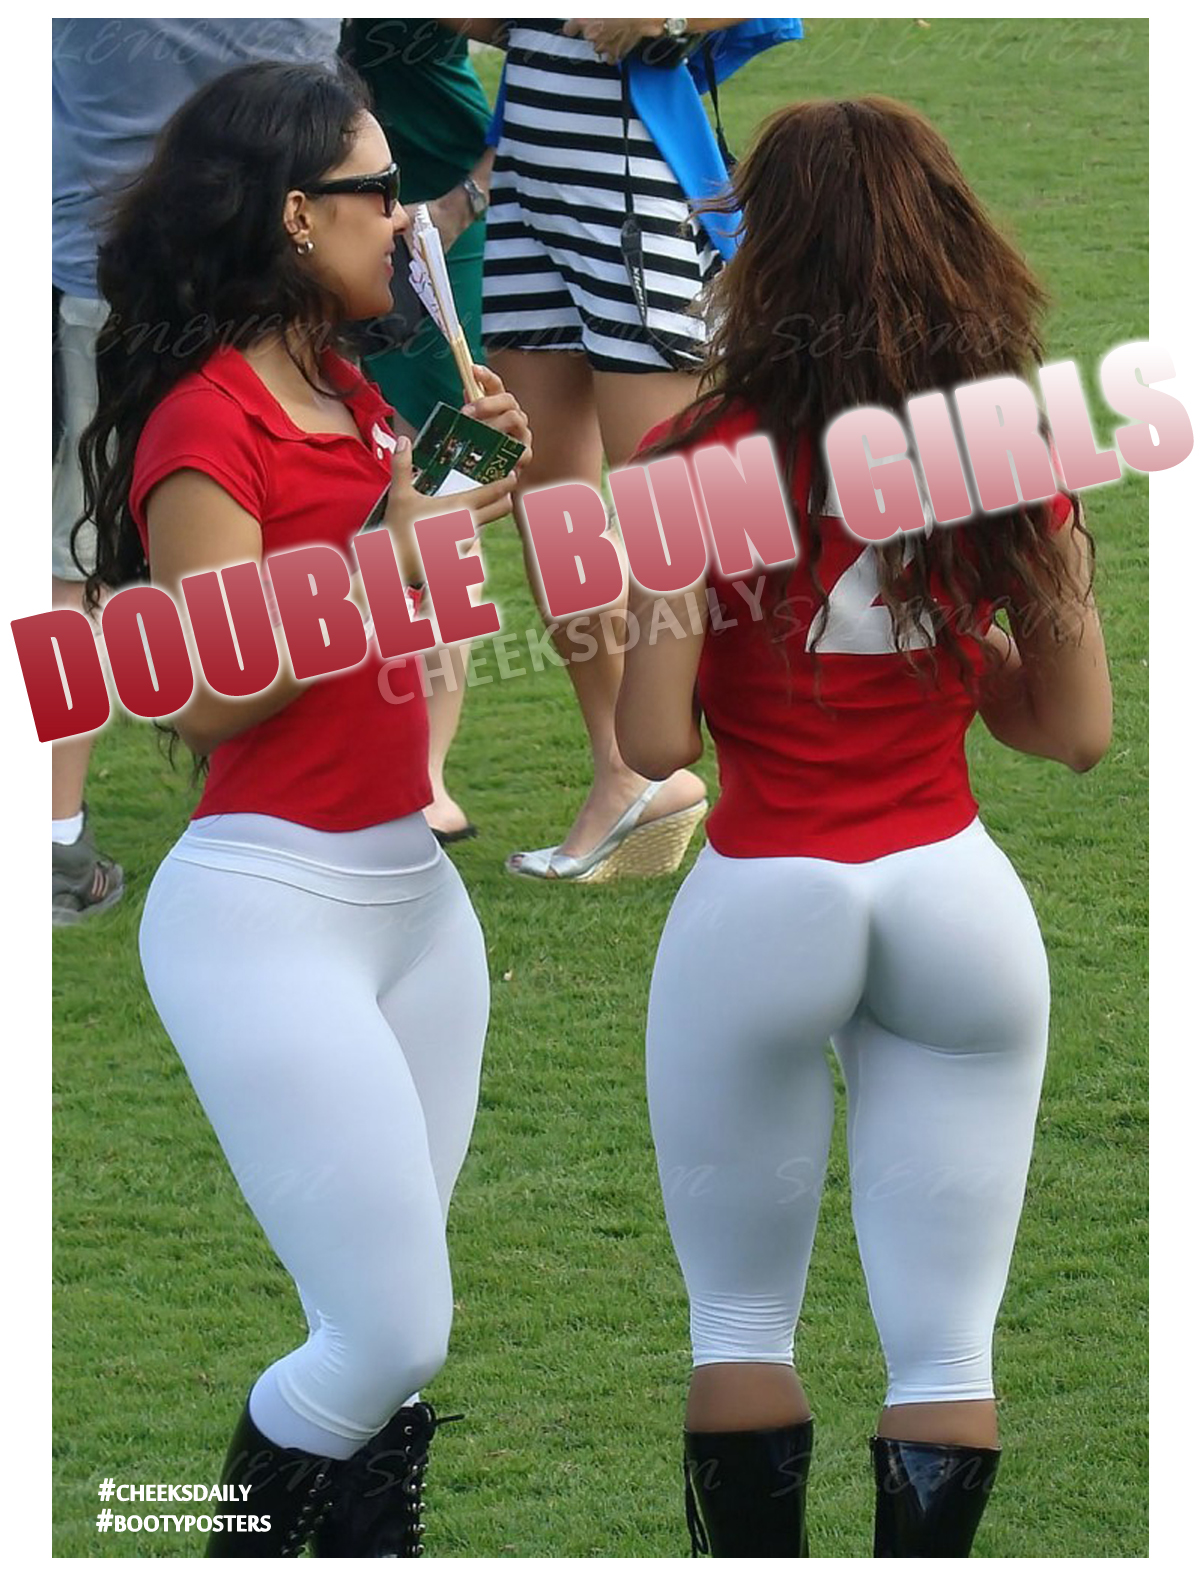 bootyposters by cheeksdaily - double bun cricket girls